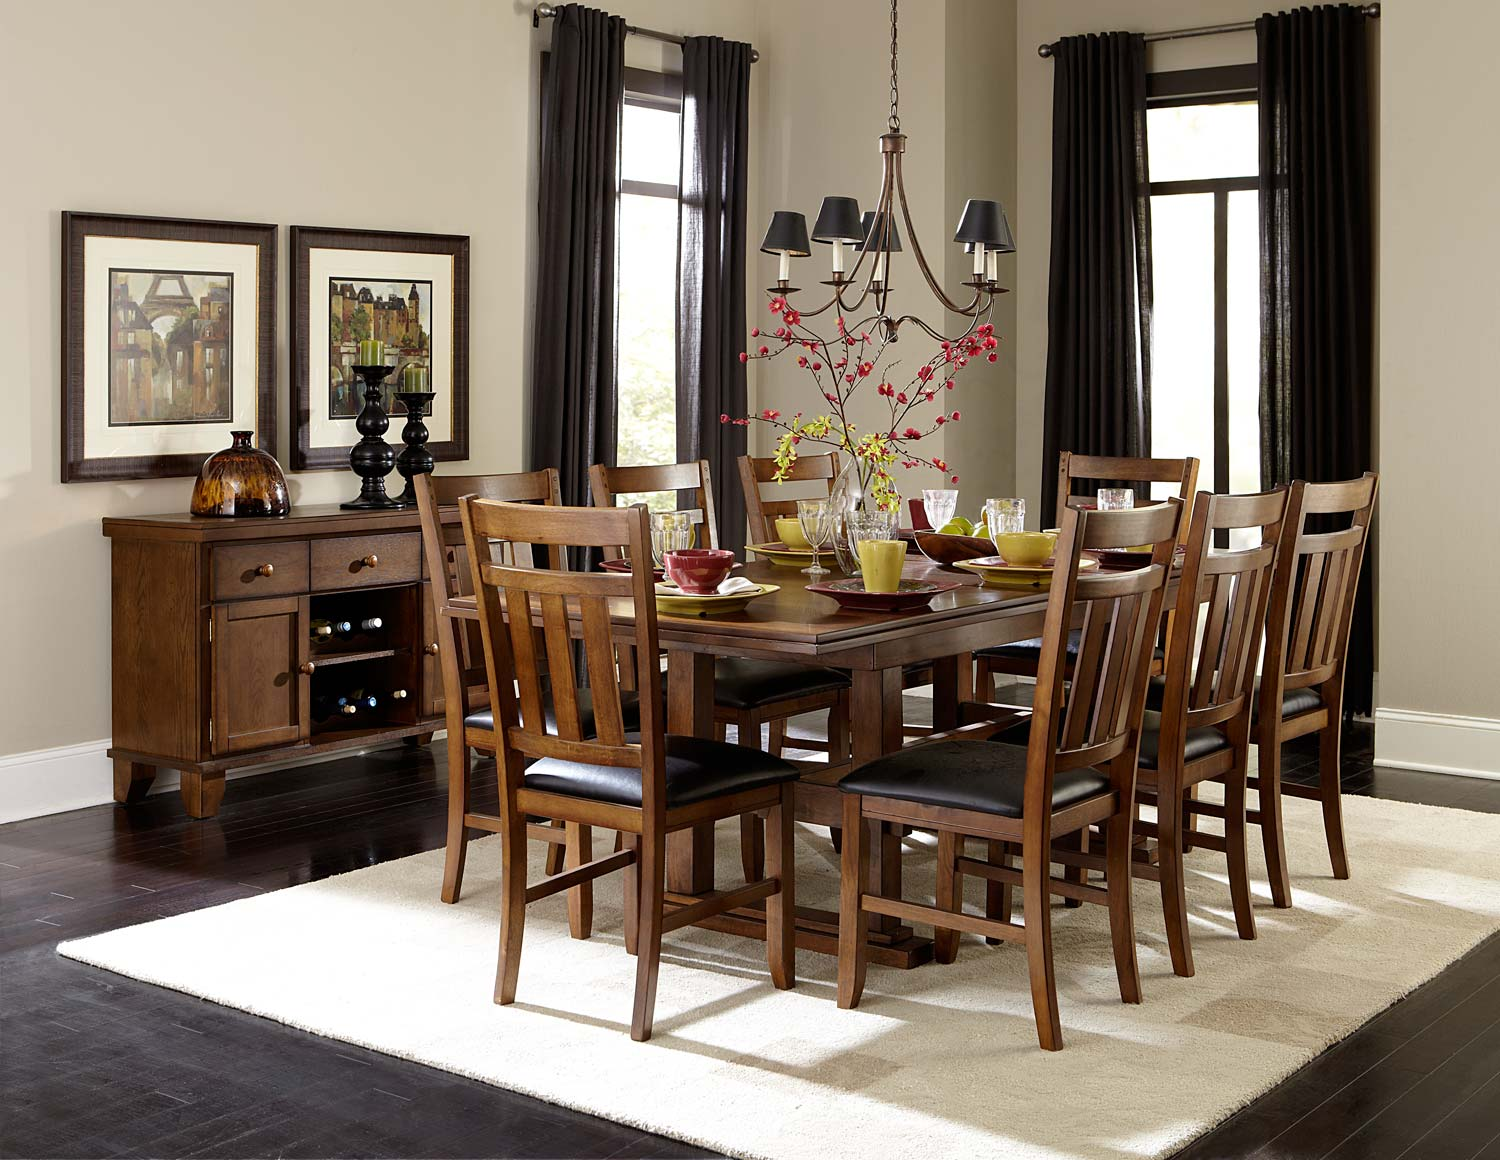 Homelegance Kirtland Dining Set - Warm Oak